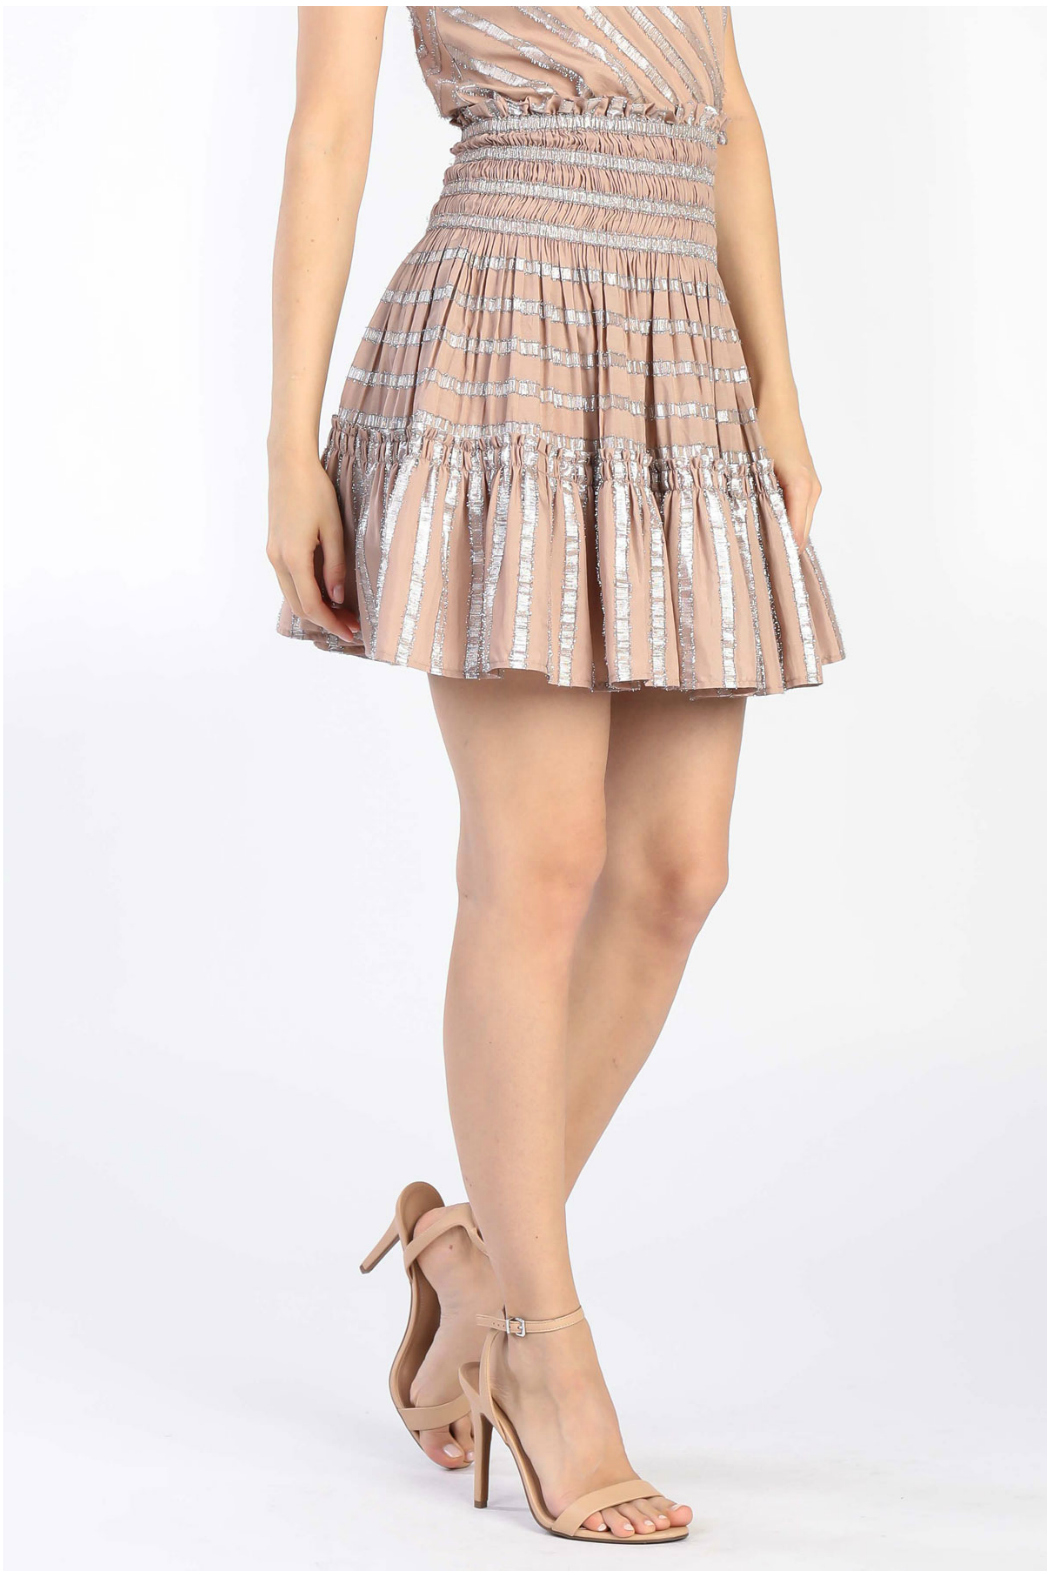 Current Air Smocked Tiered Skirt - Main Image